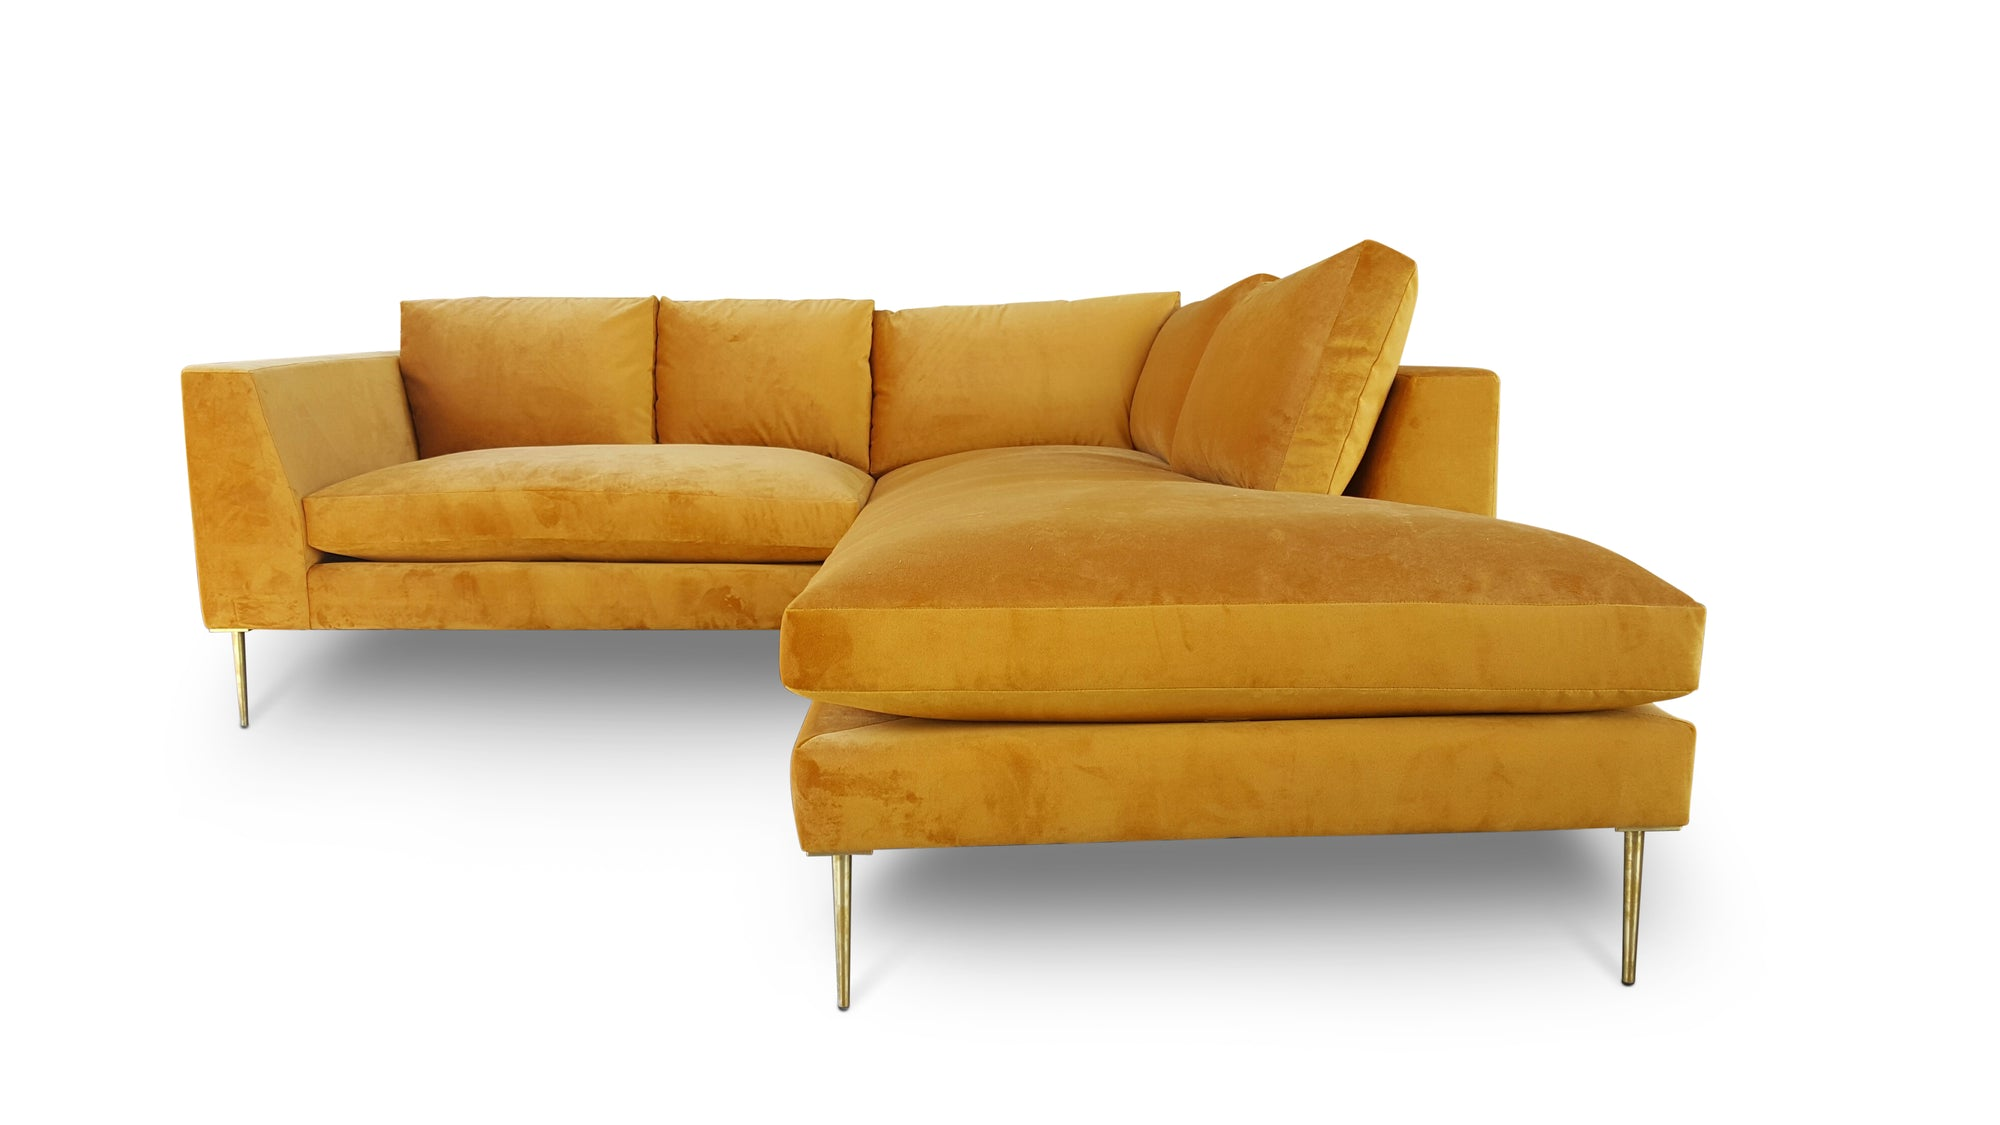 Clad Home Larchmont Sectional Sofa